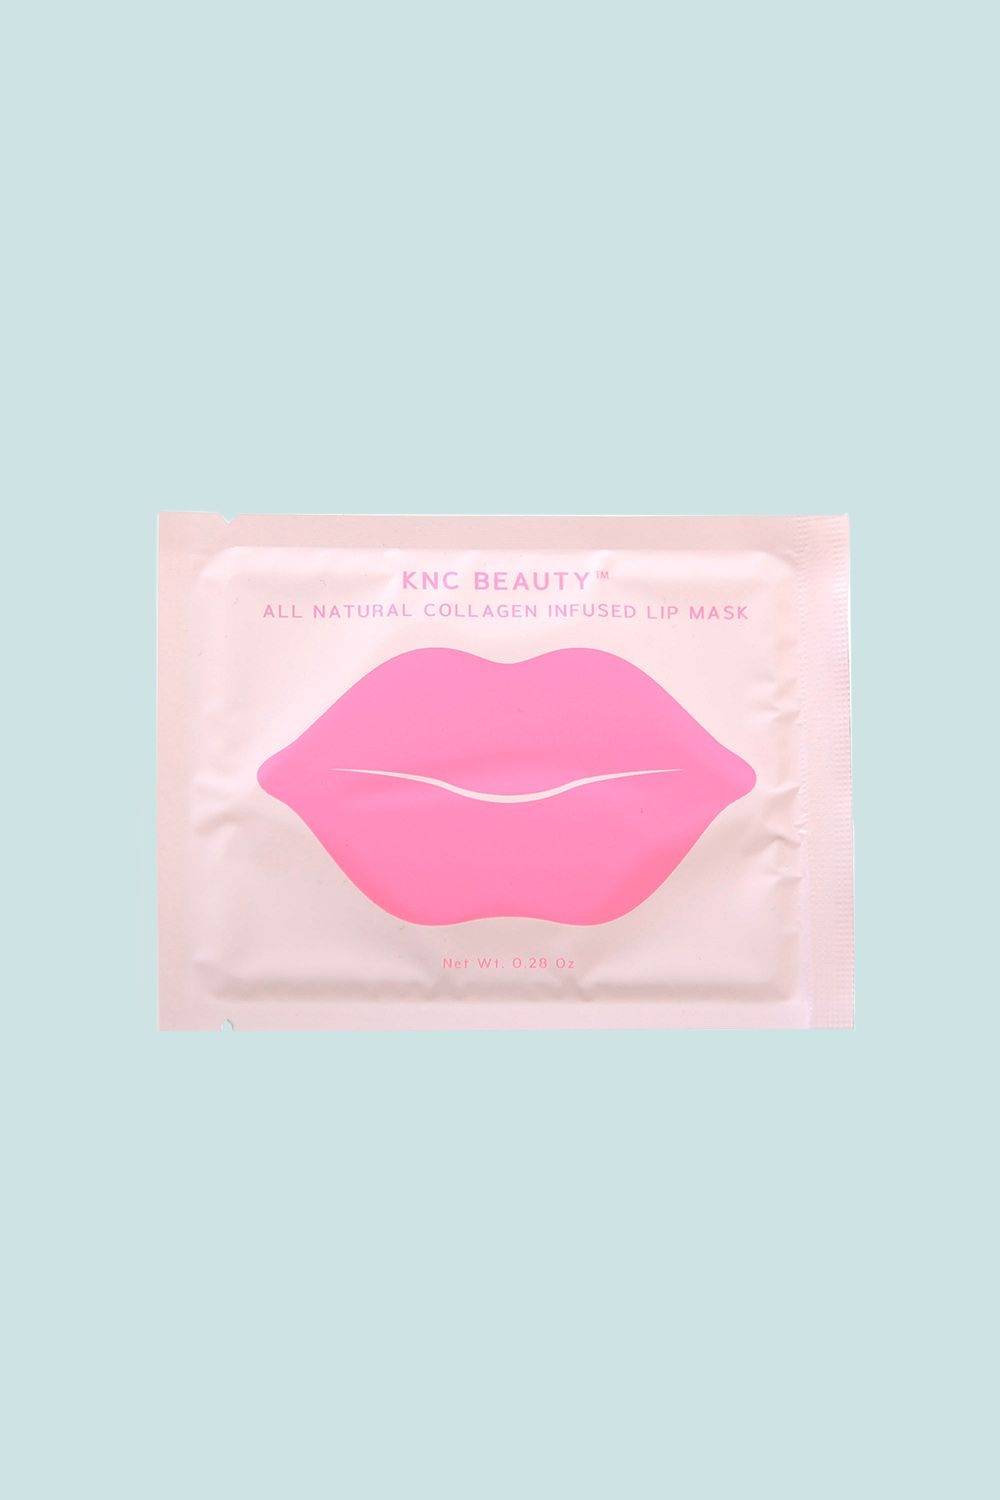 """<p>If you're a stickler foringredient lists, you'll be impressed by this all-natural elixir infused withbitter cherry extract, rose flower oil, vitamin E, and lots o' hyaluronic acid. The first beauty offering from KNC Beauty founderKristen Noel Crawley, Kim Kardashian is already a devoted fan.</p><p><br></p><p>KNC Beauty All Natural Collagen Infused Lip Mask (5 Pack), $24.99; <a href=""""https://kncbeauty.com/products/all-natural-collagen-infused-lip-mask"""" target=""""_blank"""" data-tracking-id=""""recirc-text-link"""">kncbeauty.com</a>.</p>"""